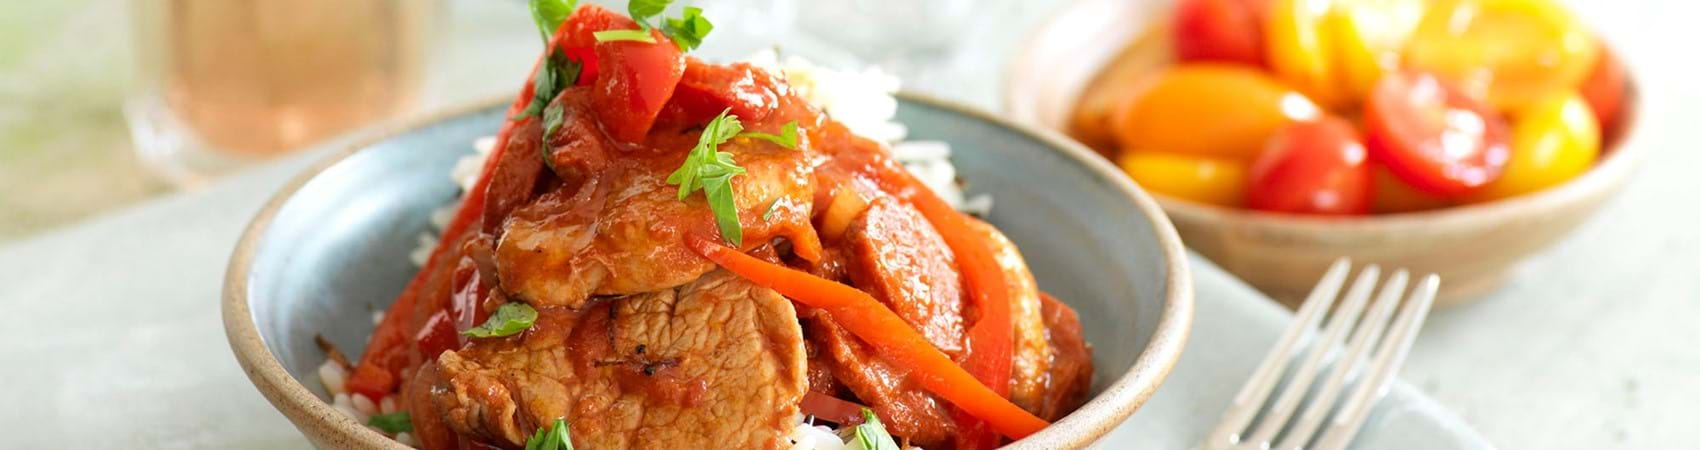 Pan Fried Pork Fillet With Chorizo, Peppers And Tomatoes